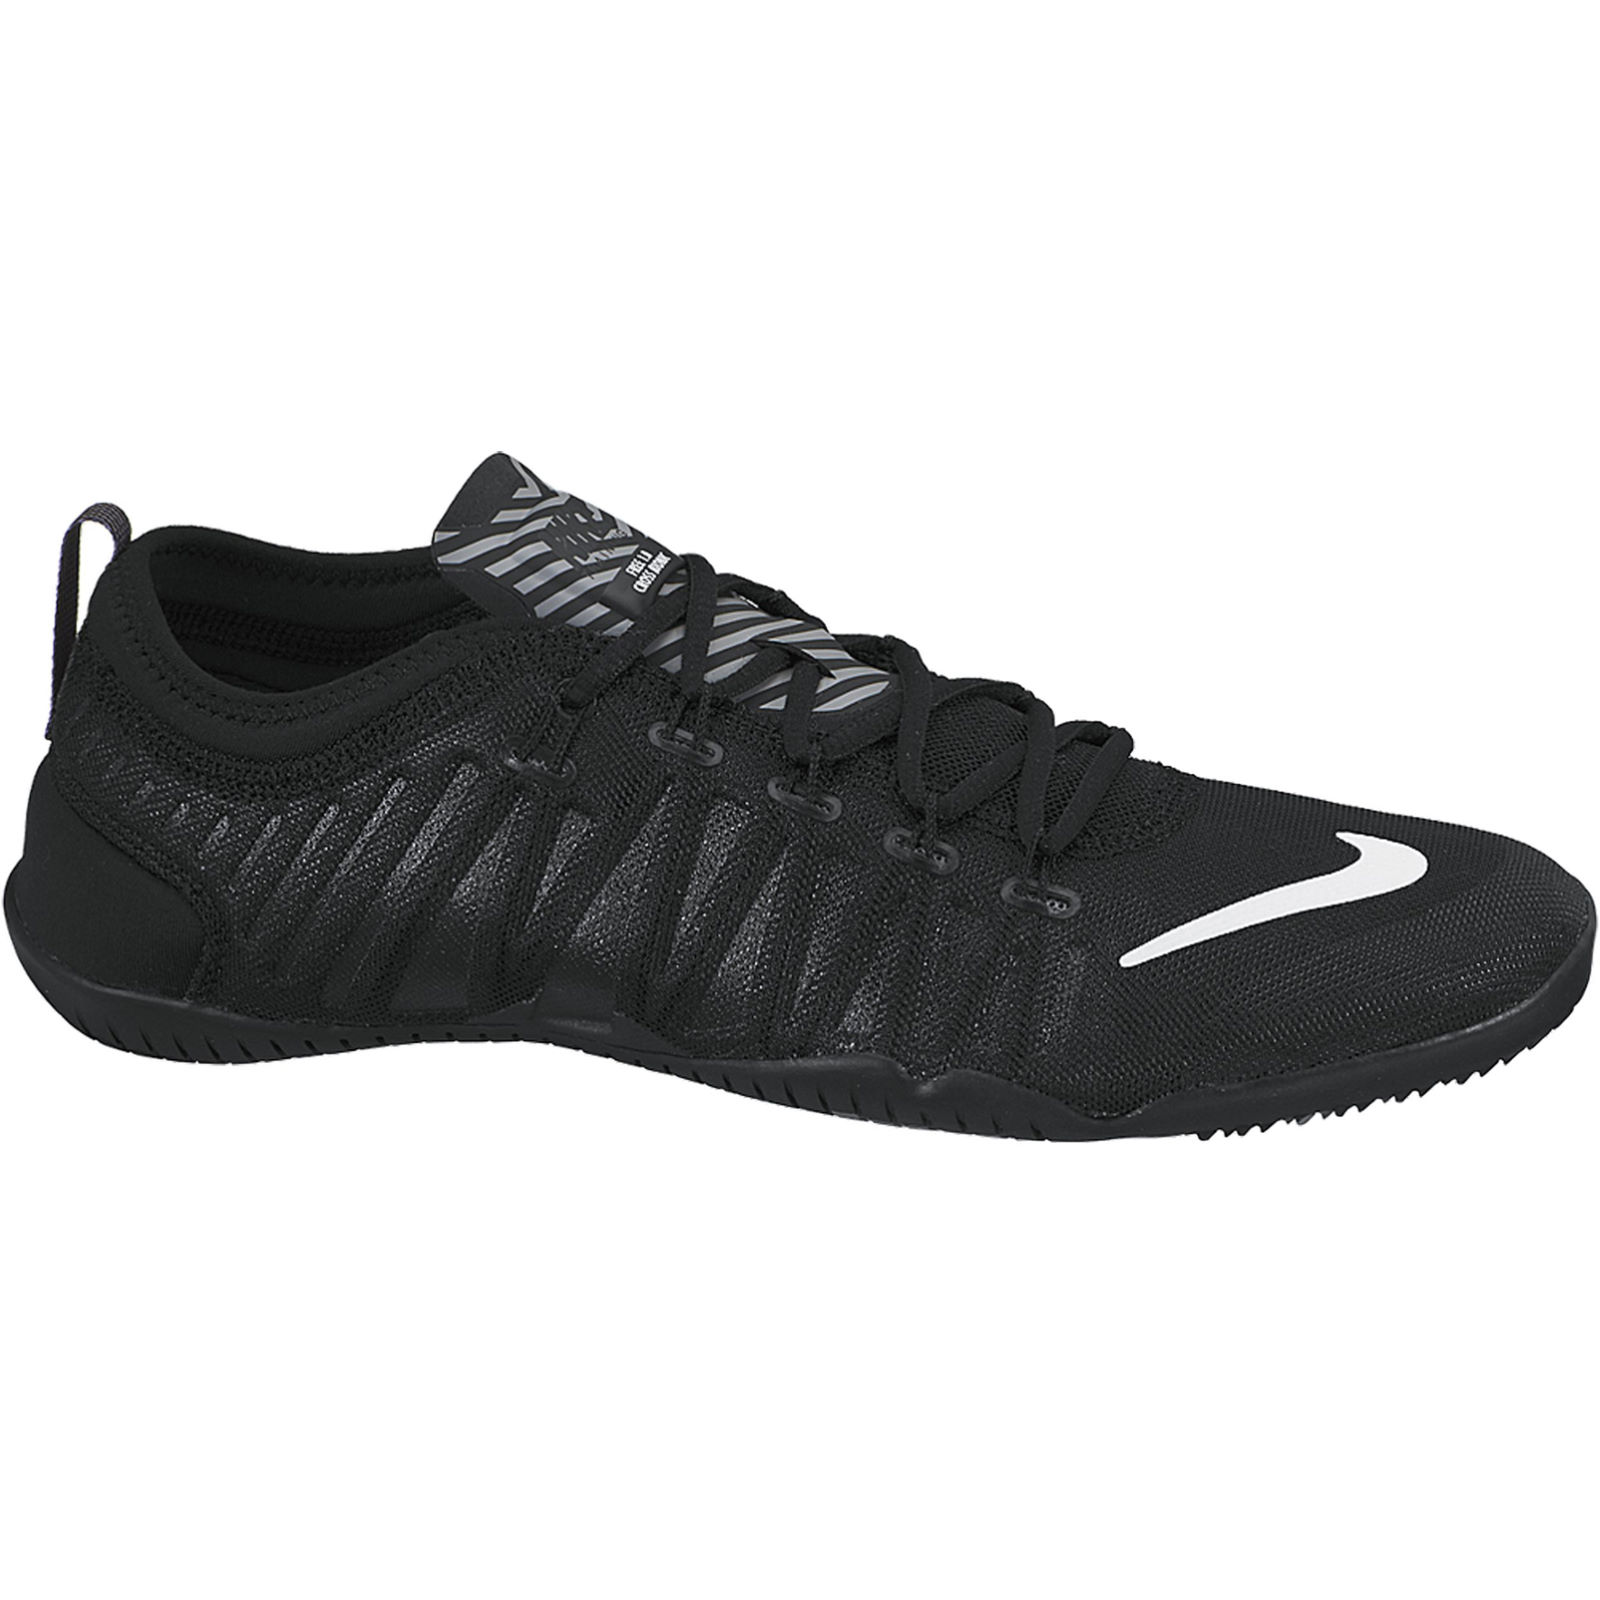 Nike Women's Free 1.0 Cross Bionic Shoes - HO14